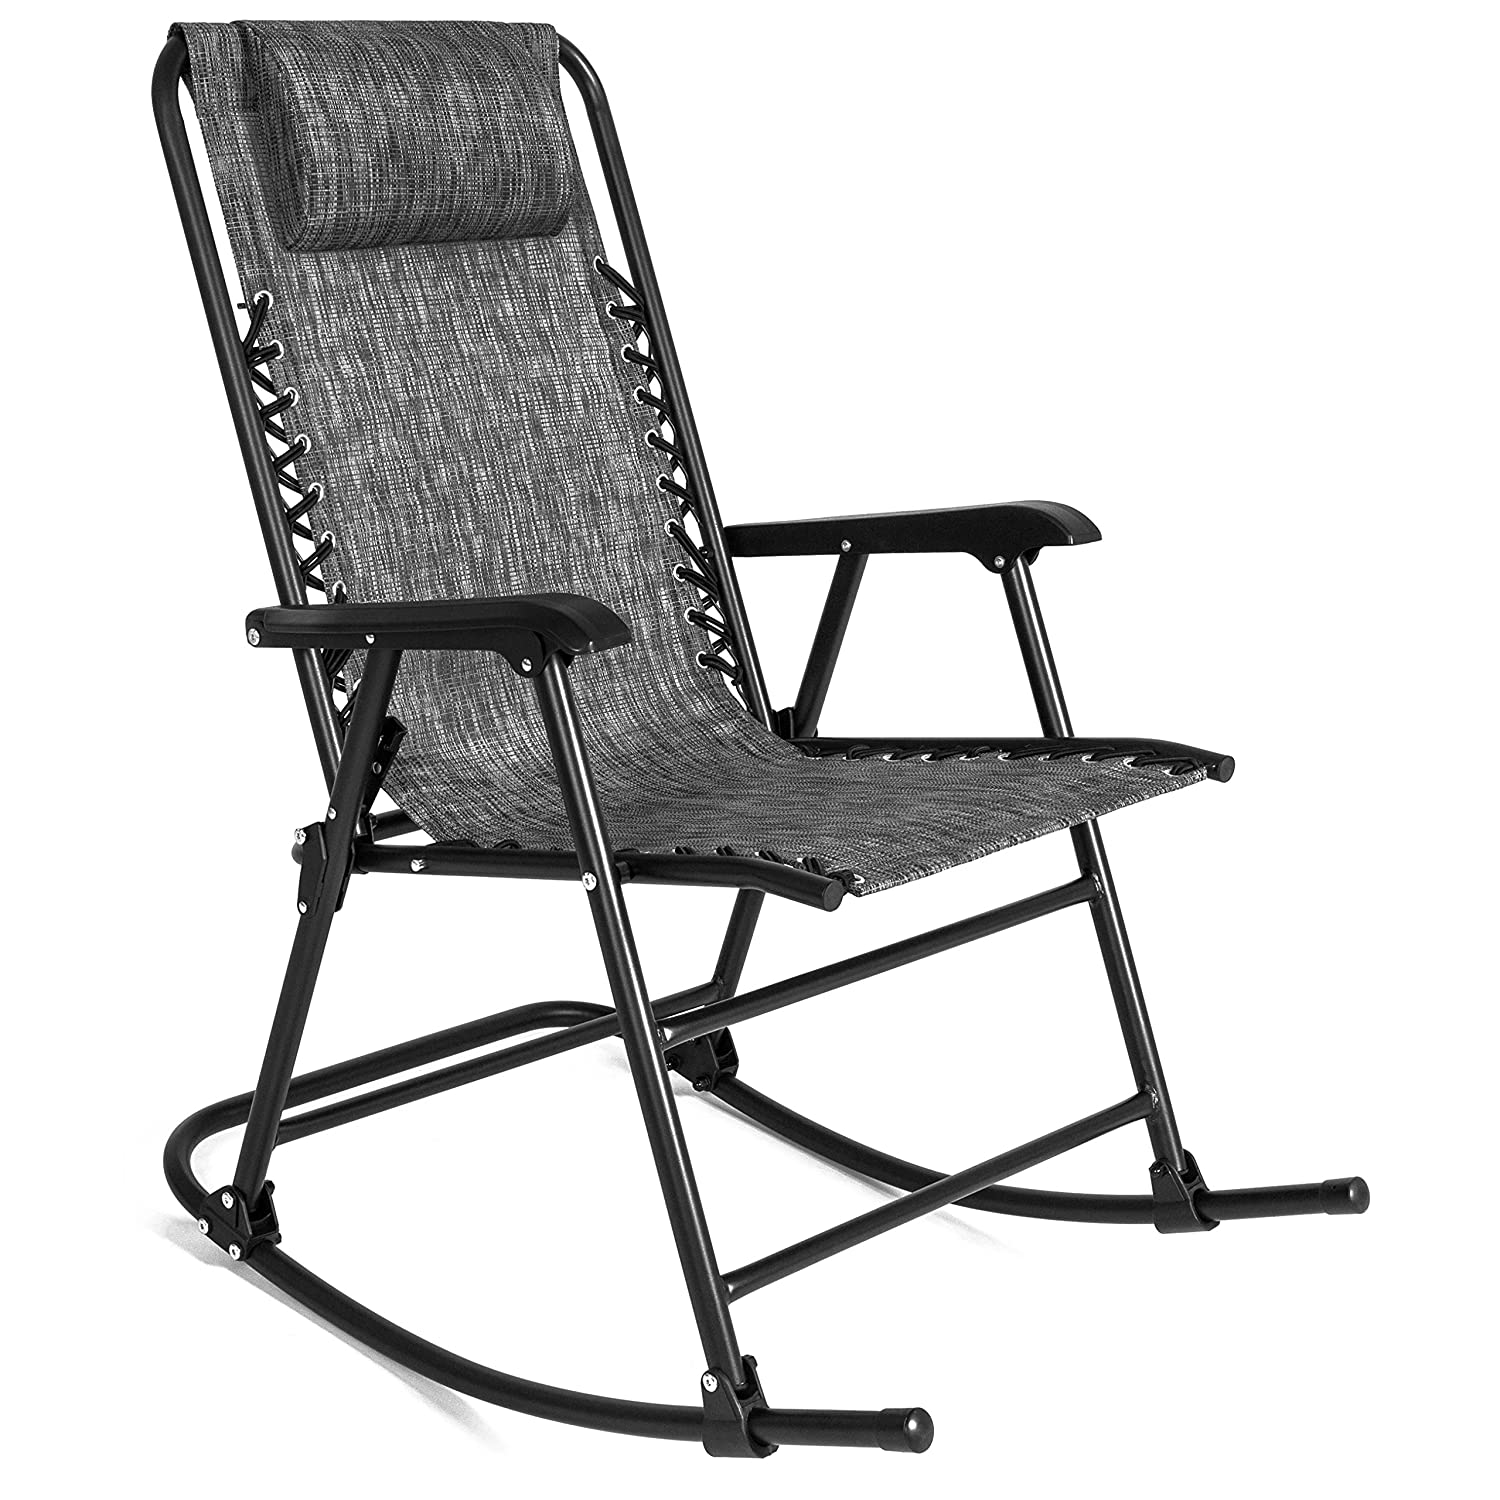 Best Choice Products Foldable Zero Gravity Rocking Mesh Patio Recliner Chair w Headrest Pillow, Gray